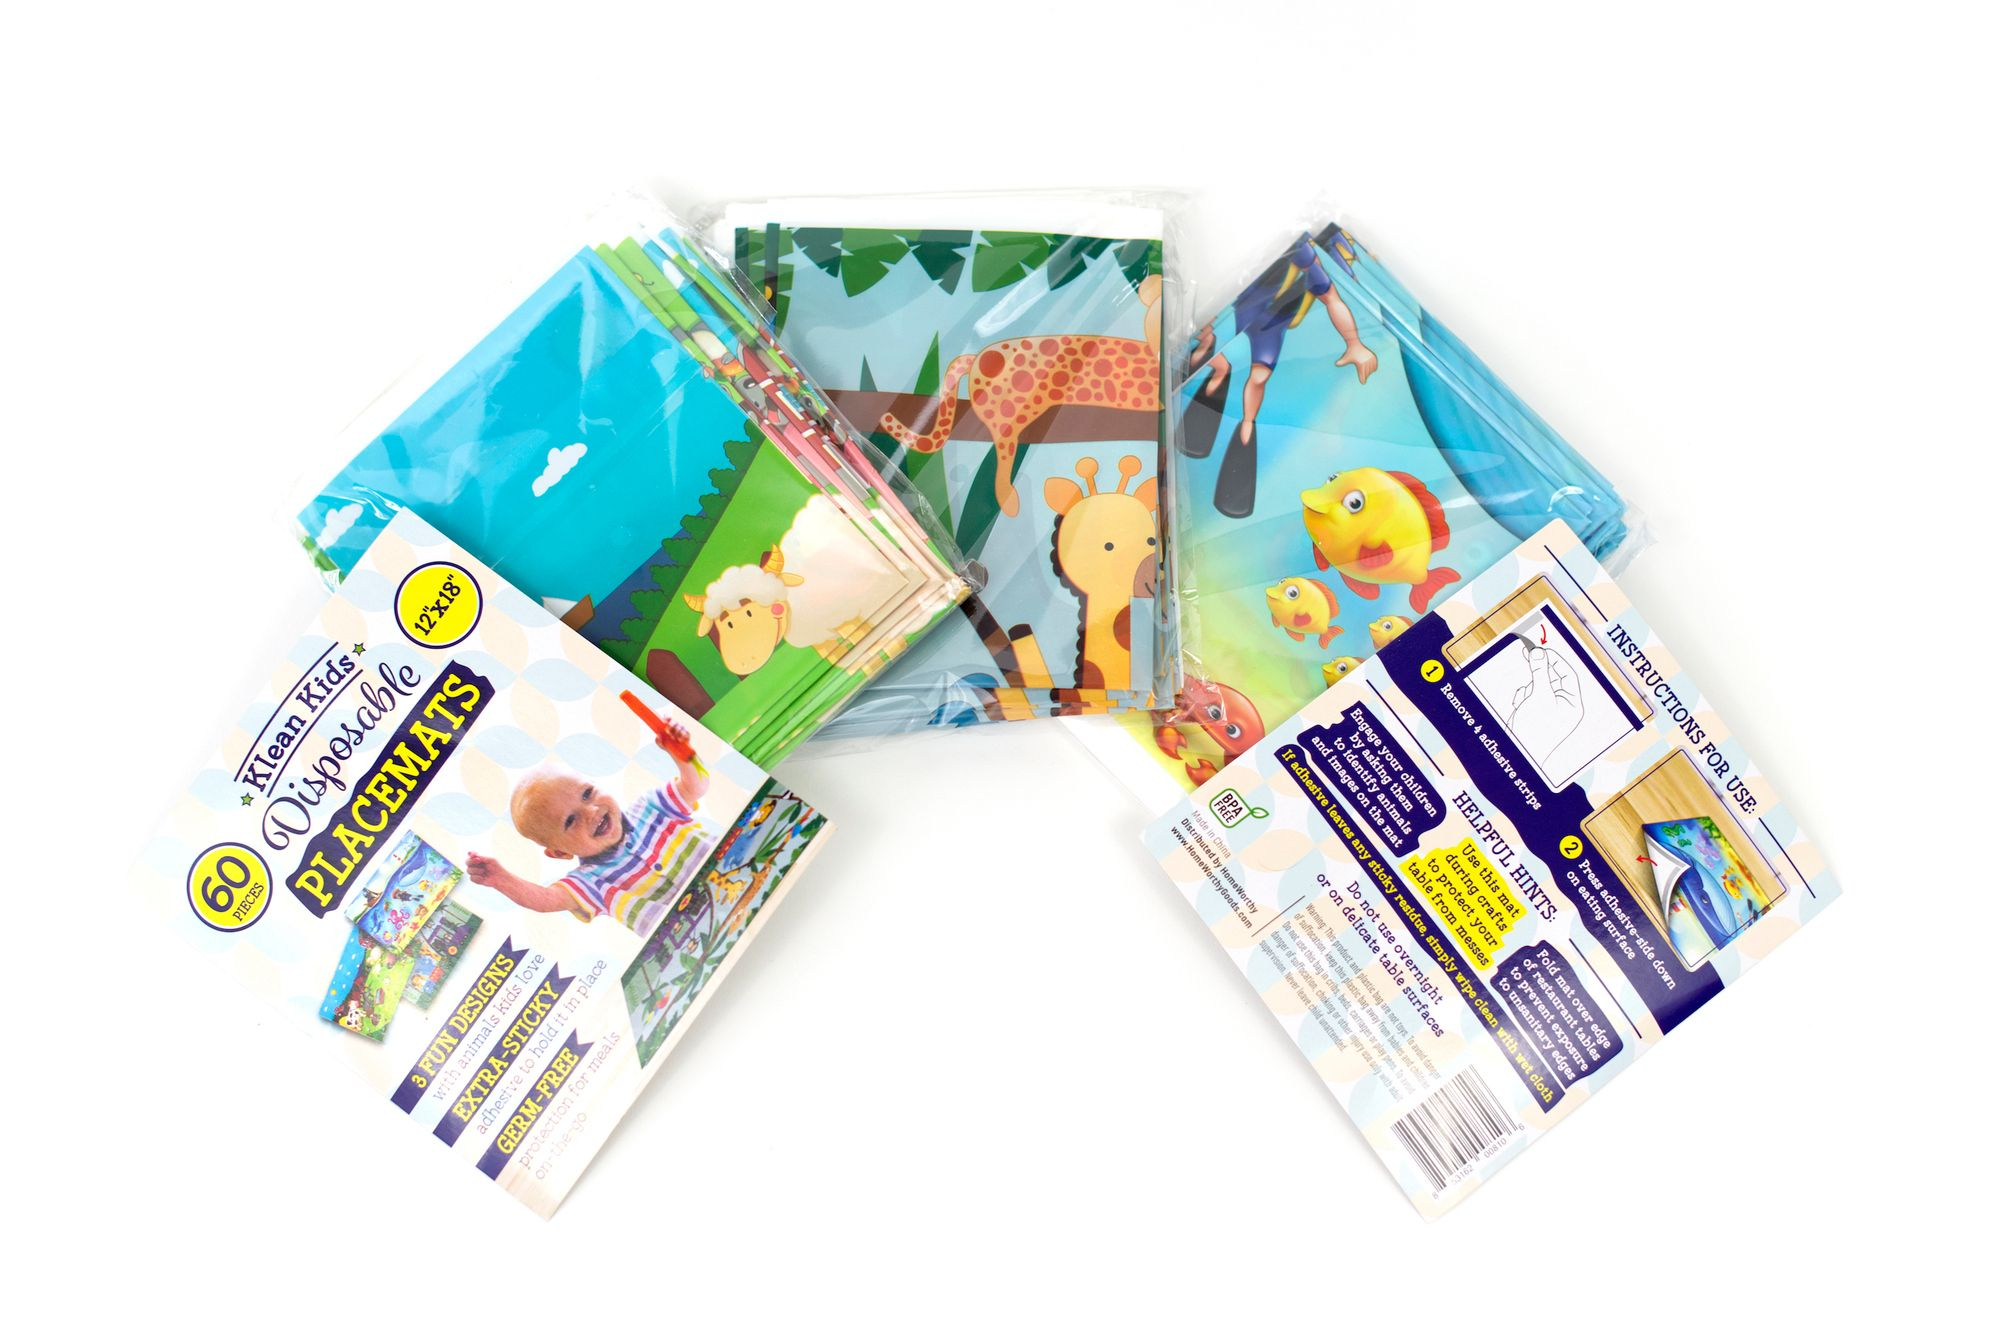 Disposable Placemats In 2020 Toddler Placemat Engage Kids Smart Kids